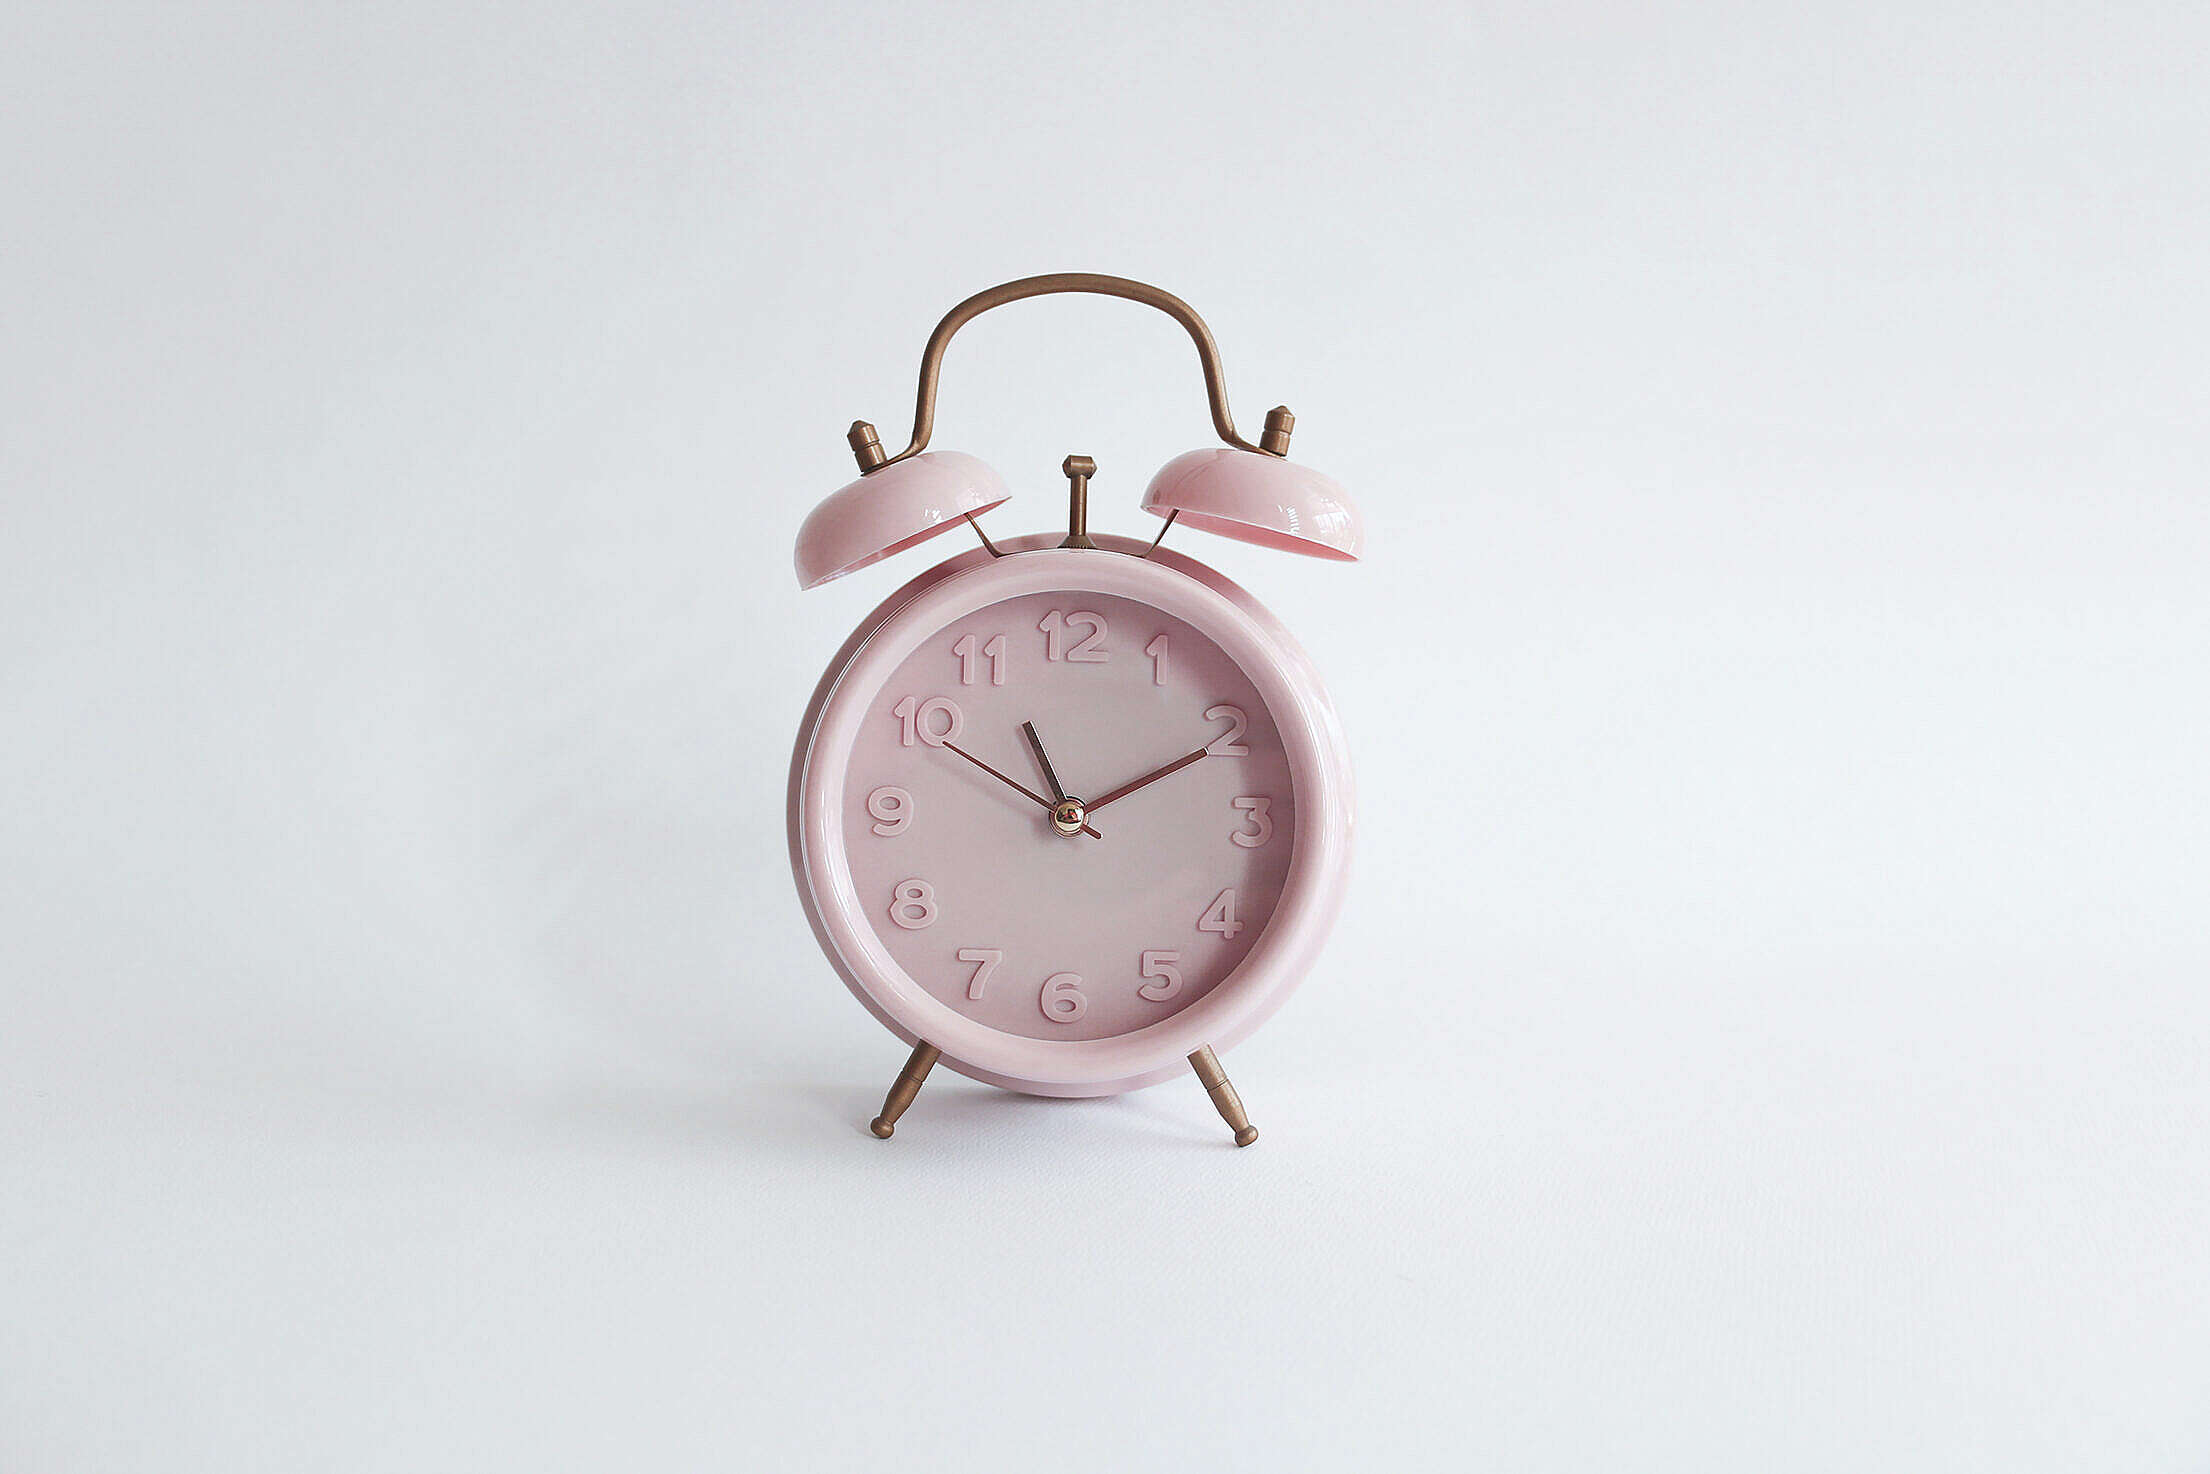 Pink Vintage Alarm Clock Retro Free Stock Photo